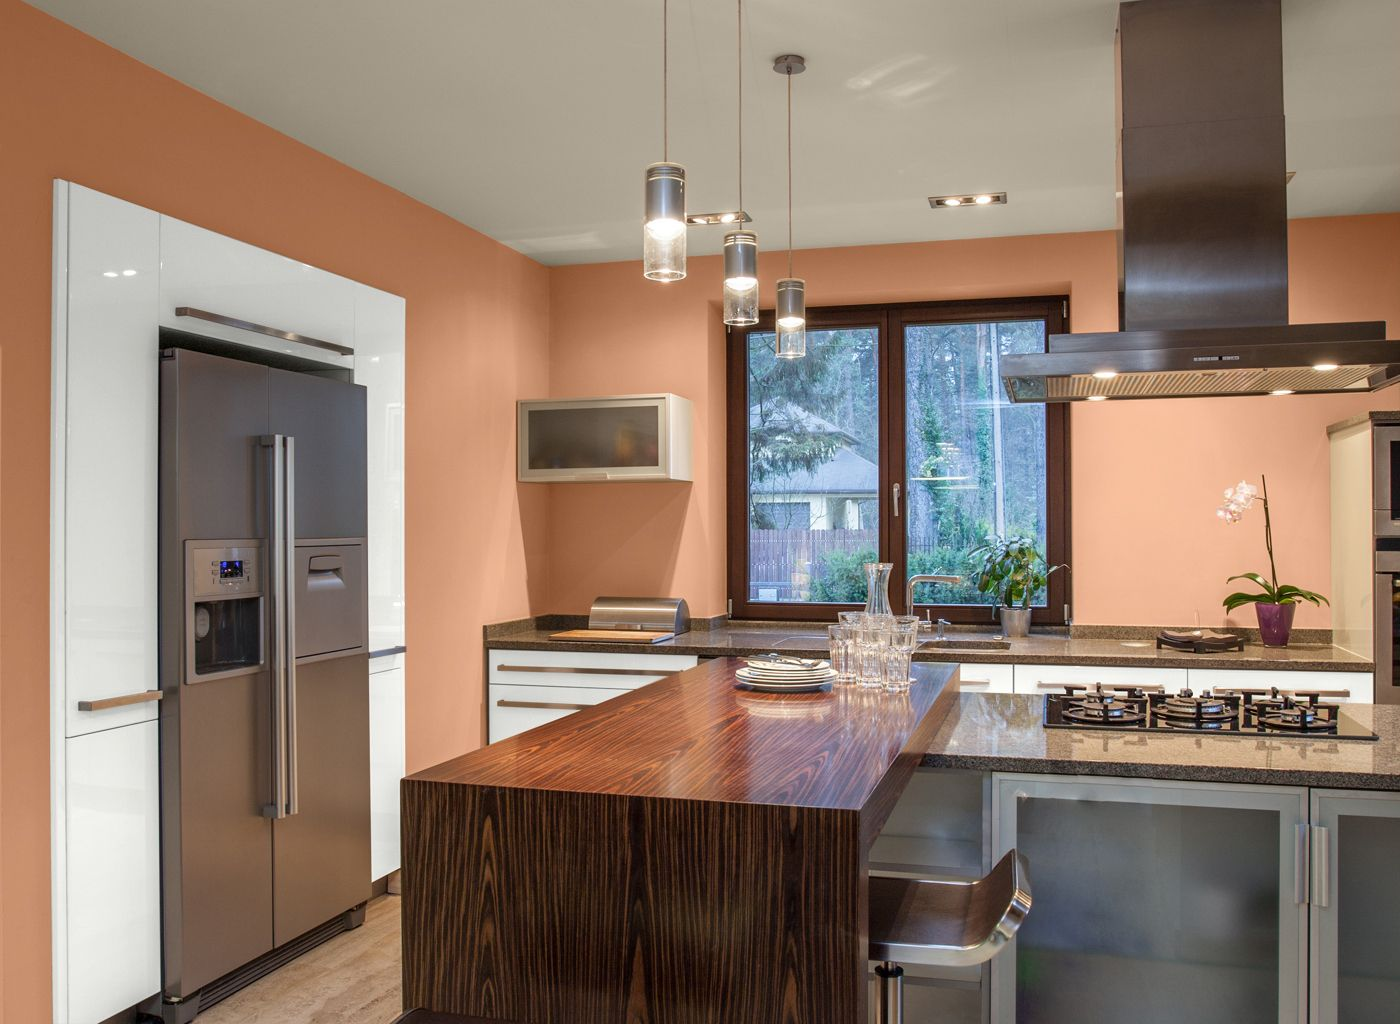 Peach Paint Color For Kitchen Kitchen Remodel Ideas For Small Kitchen Check More At Http Www Entropiads C Kitchen Colors Kitchen Paint Colors Peach Kitchen